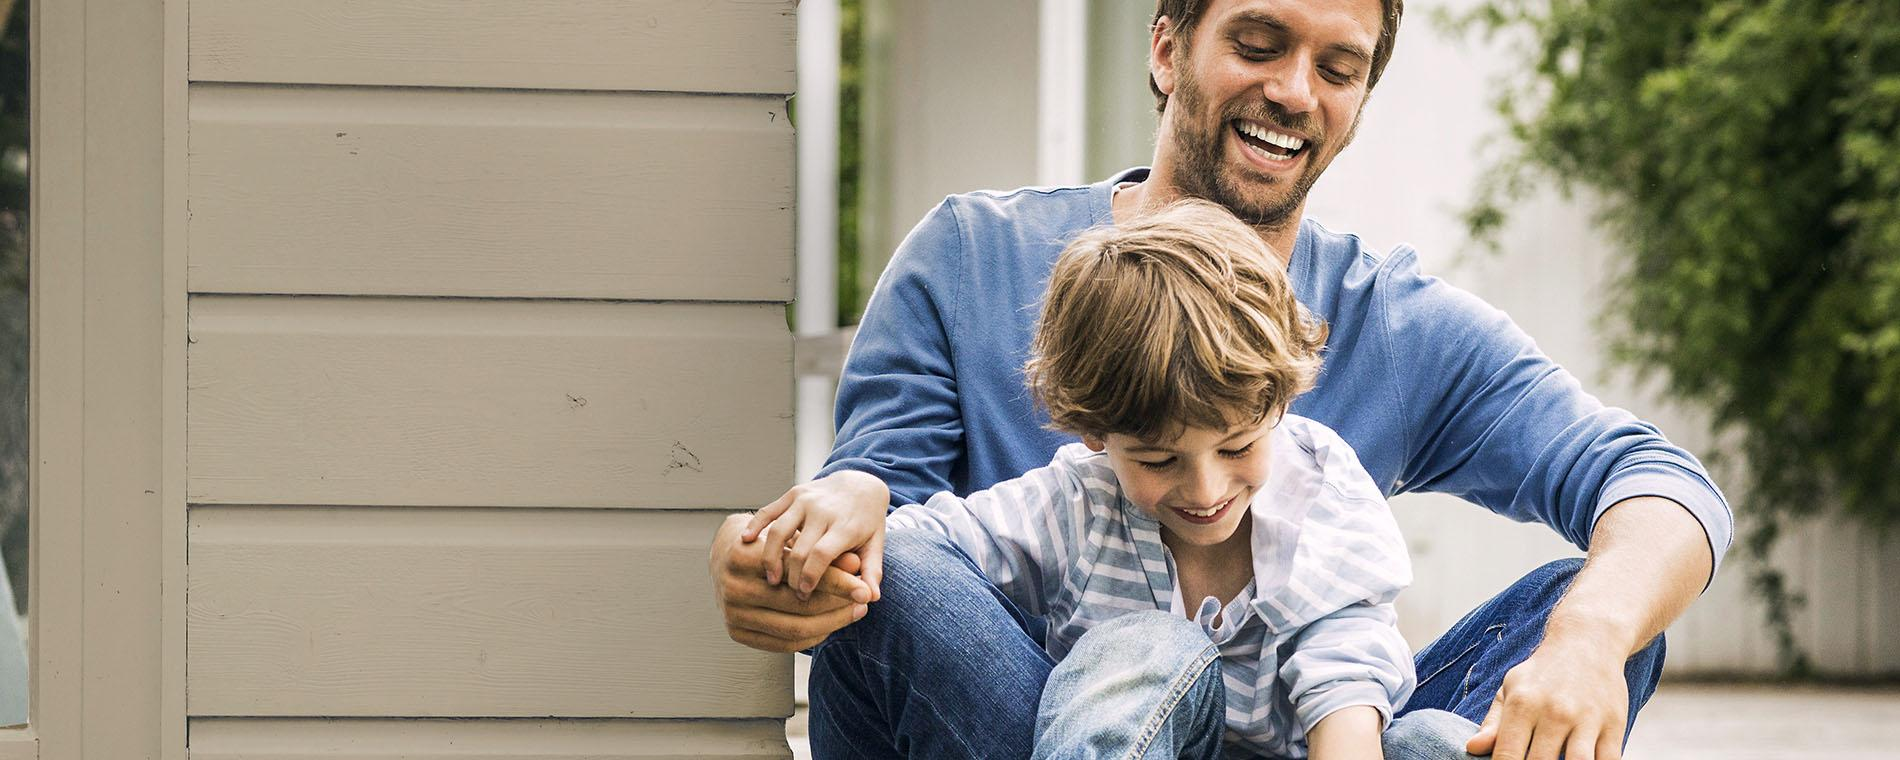 Father and son in house protected by good homeowners coverage